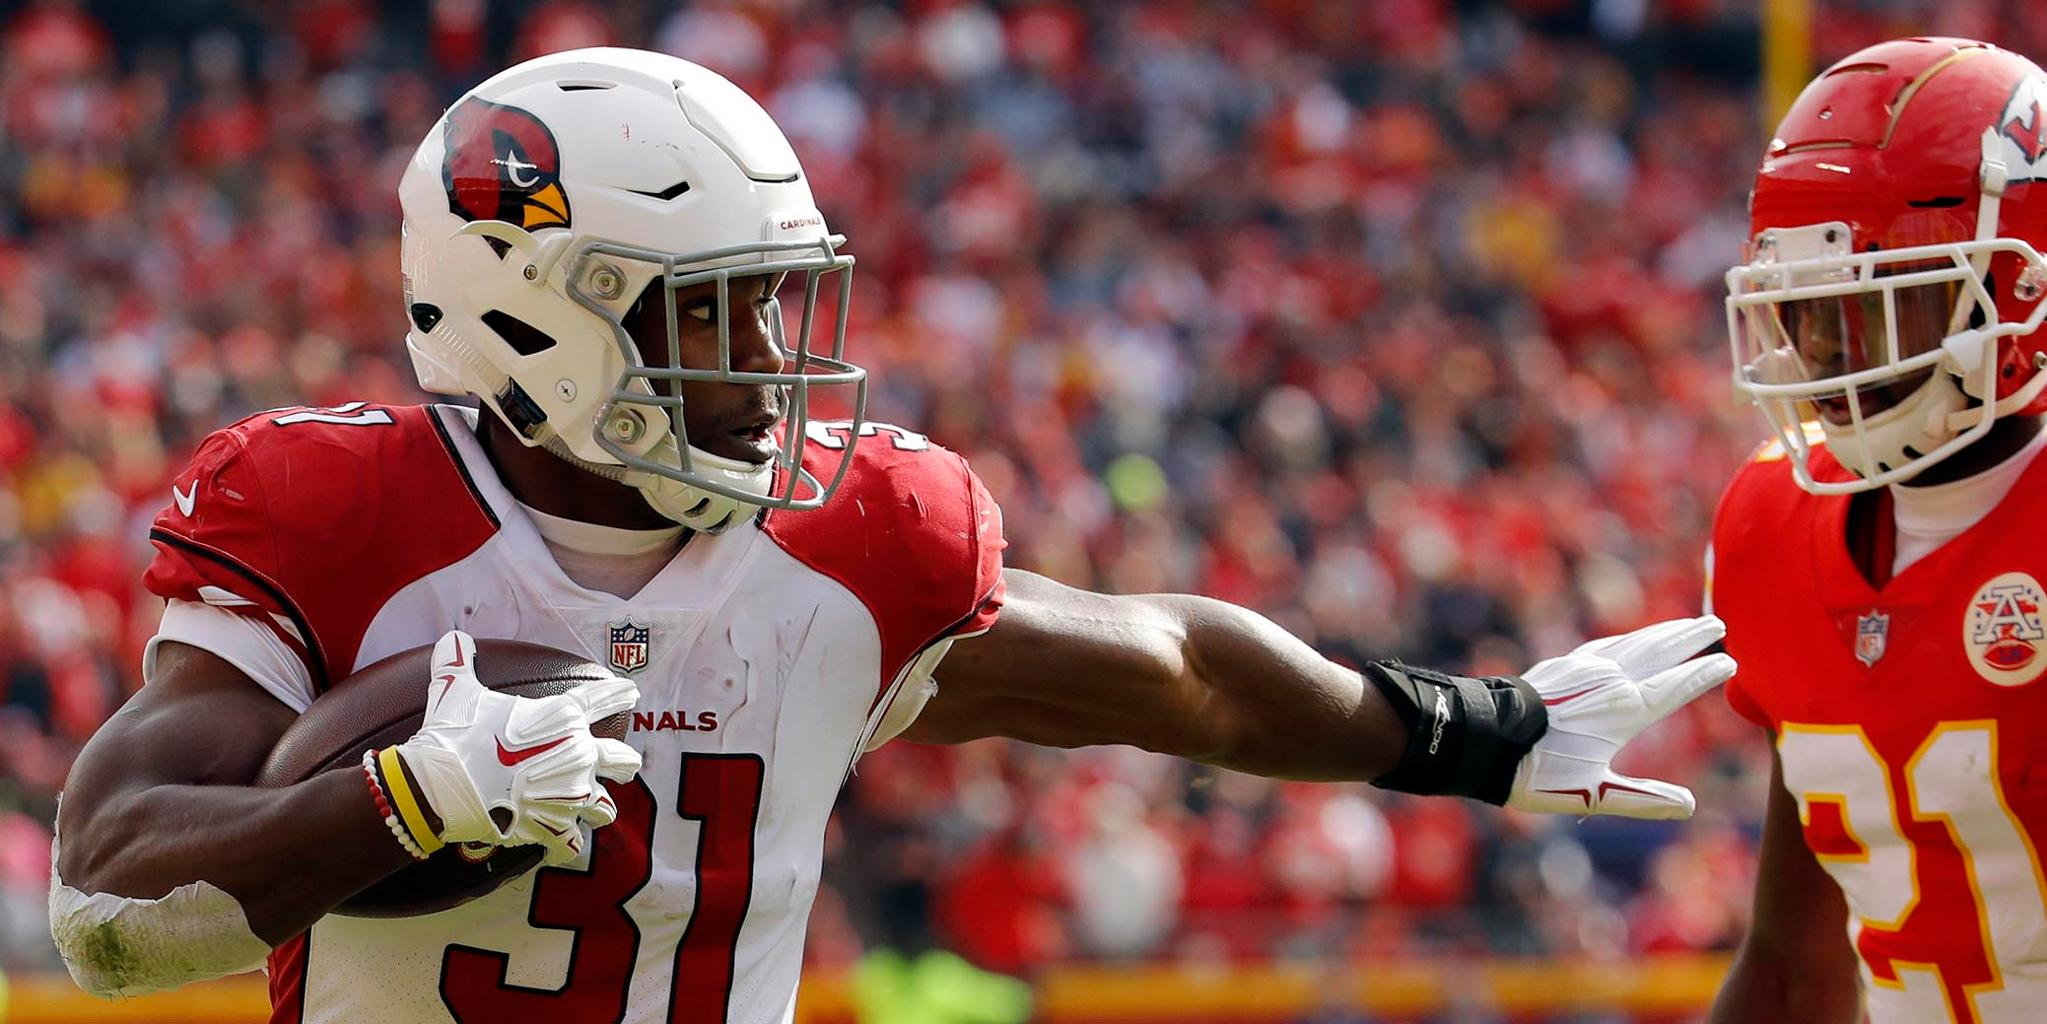 .@DavidJohnson31 is getting the rock more.  And that's a good thing: https://t.co/onJ2doz2RU https://t.co/qW3hPx7ww9